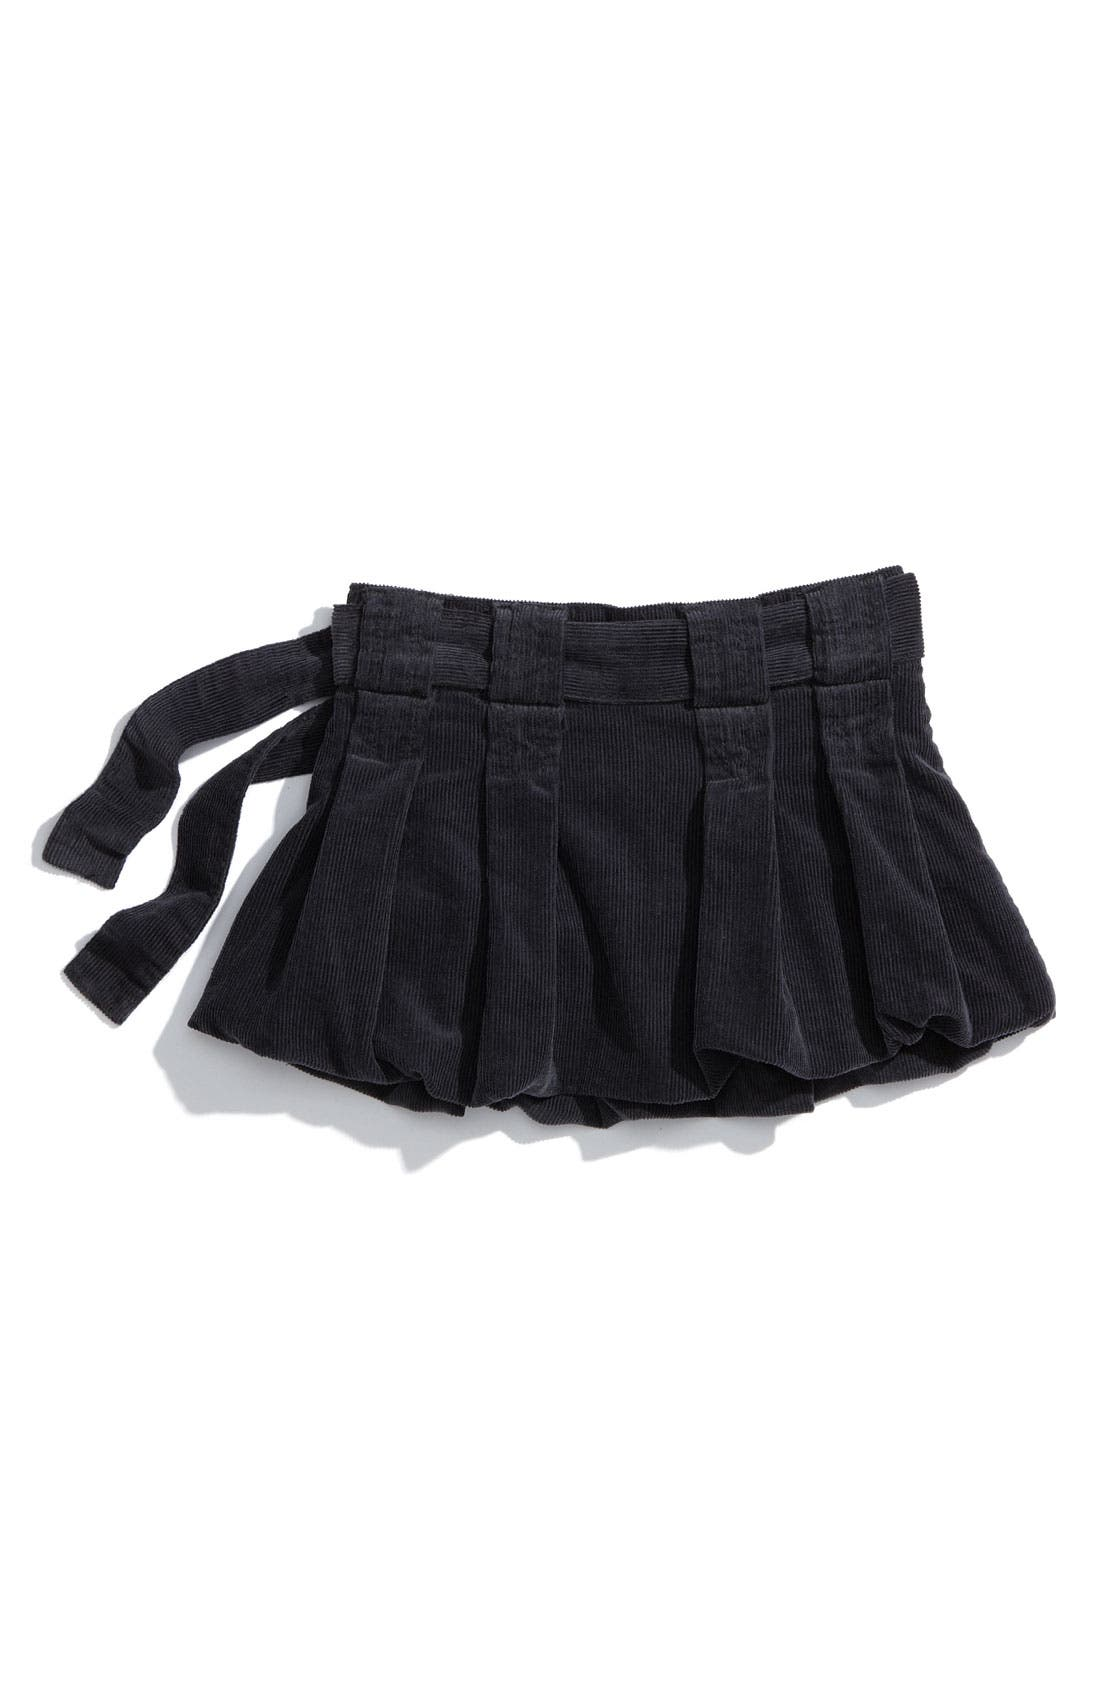 Main Image - United Colors of Benetton Kids Corduroy Skirt (Toddler)